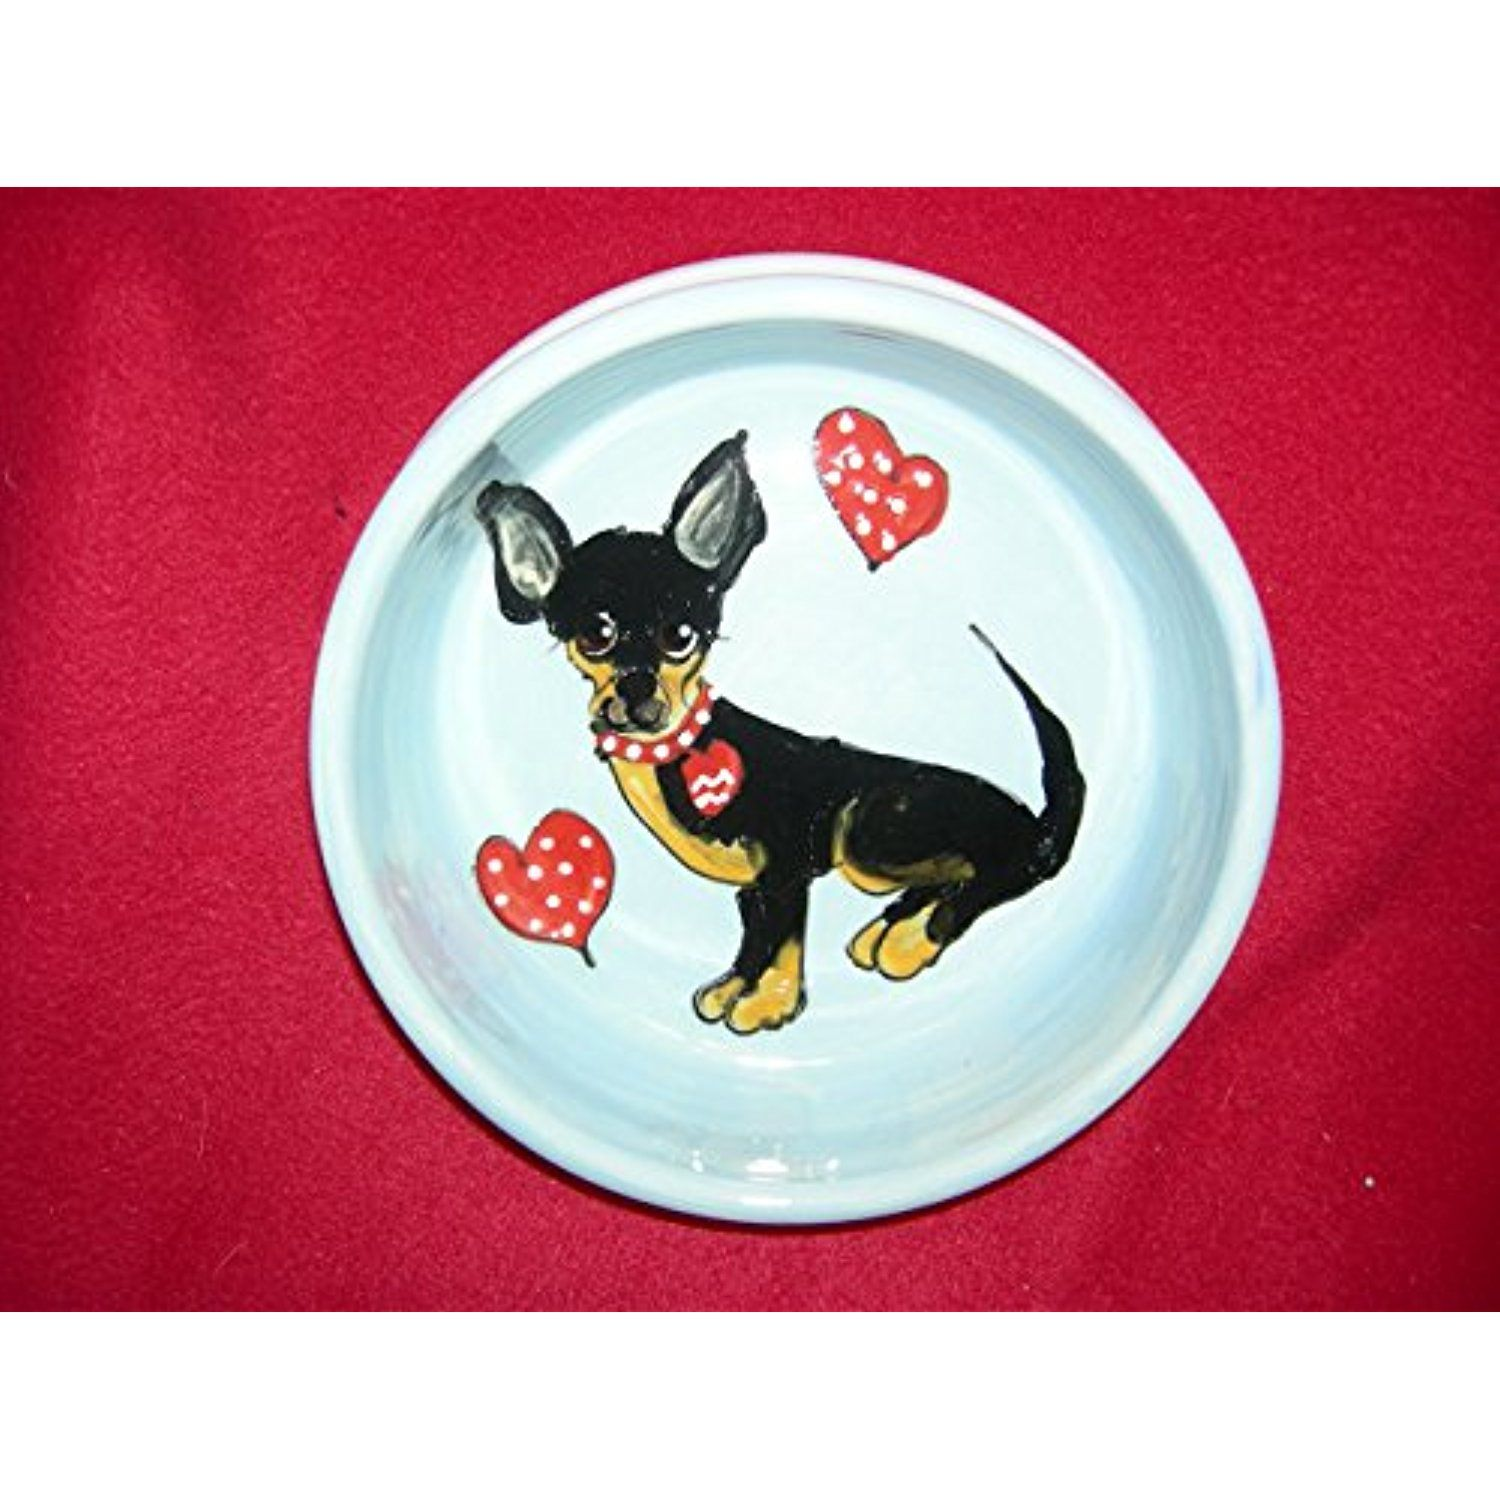 Dog Bowl 6 Chihuahua Dog Bowl For Food Or Water Personalized At